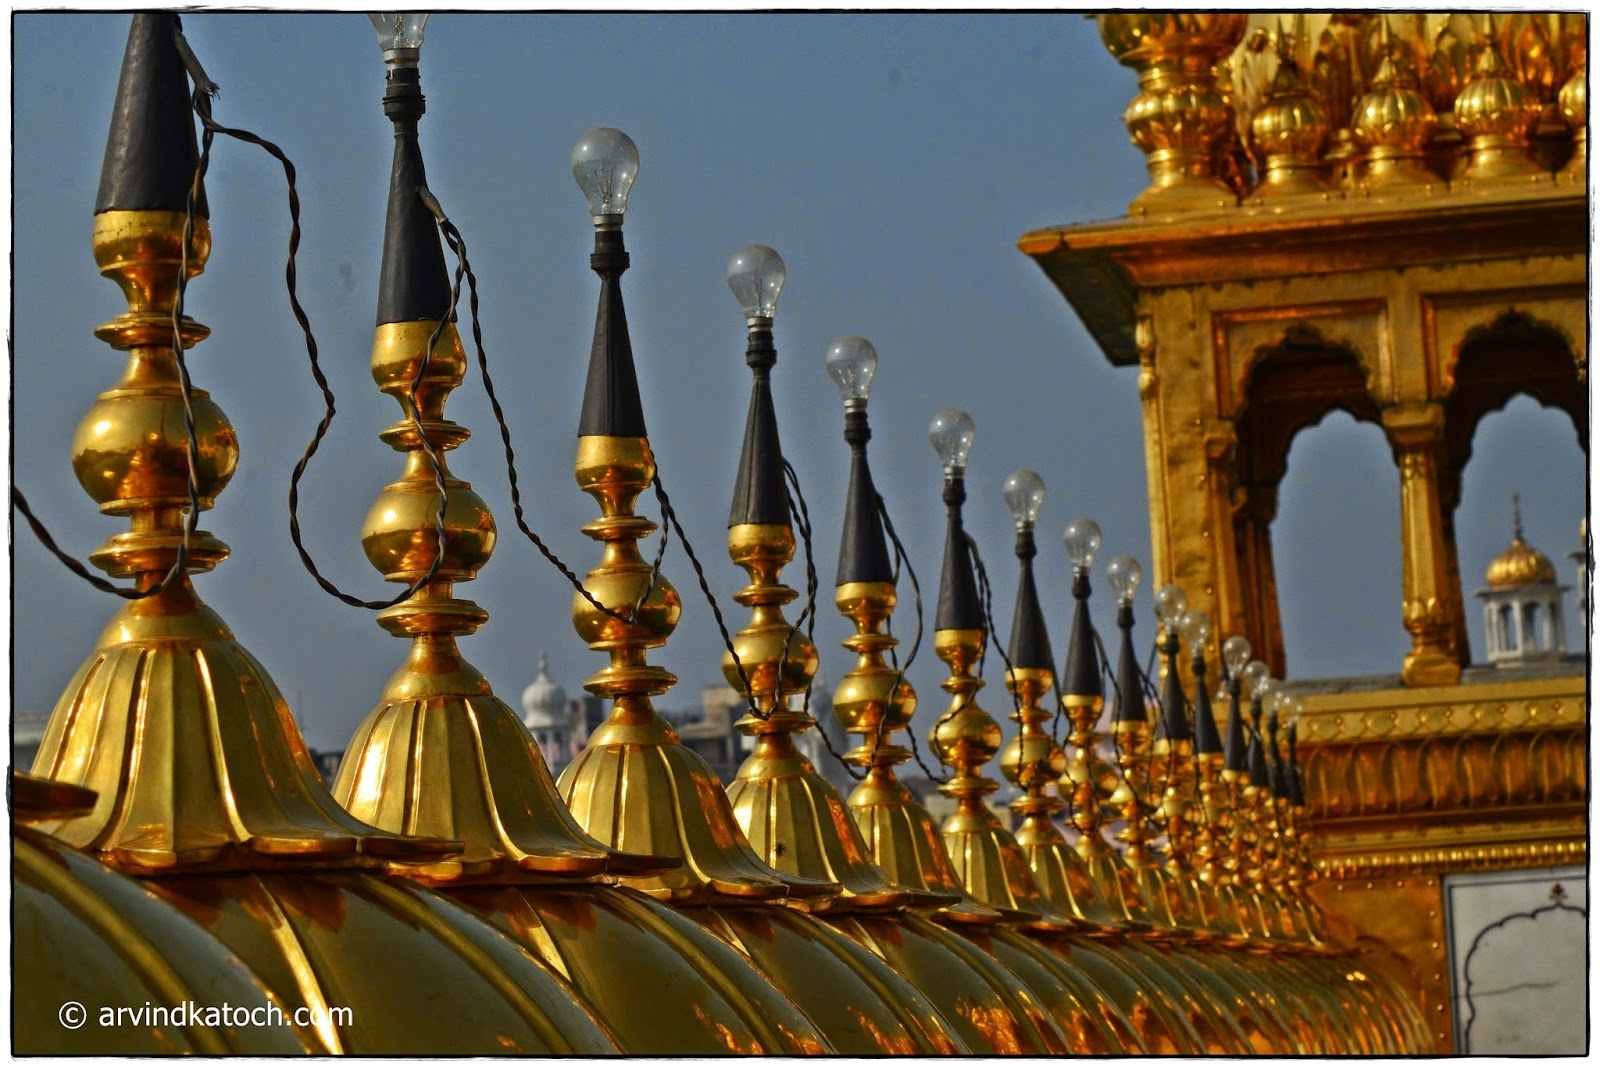 Light Bulbs, Golden temple, Amritsar,